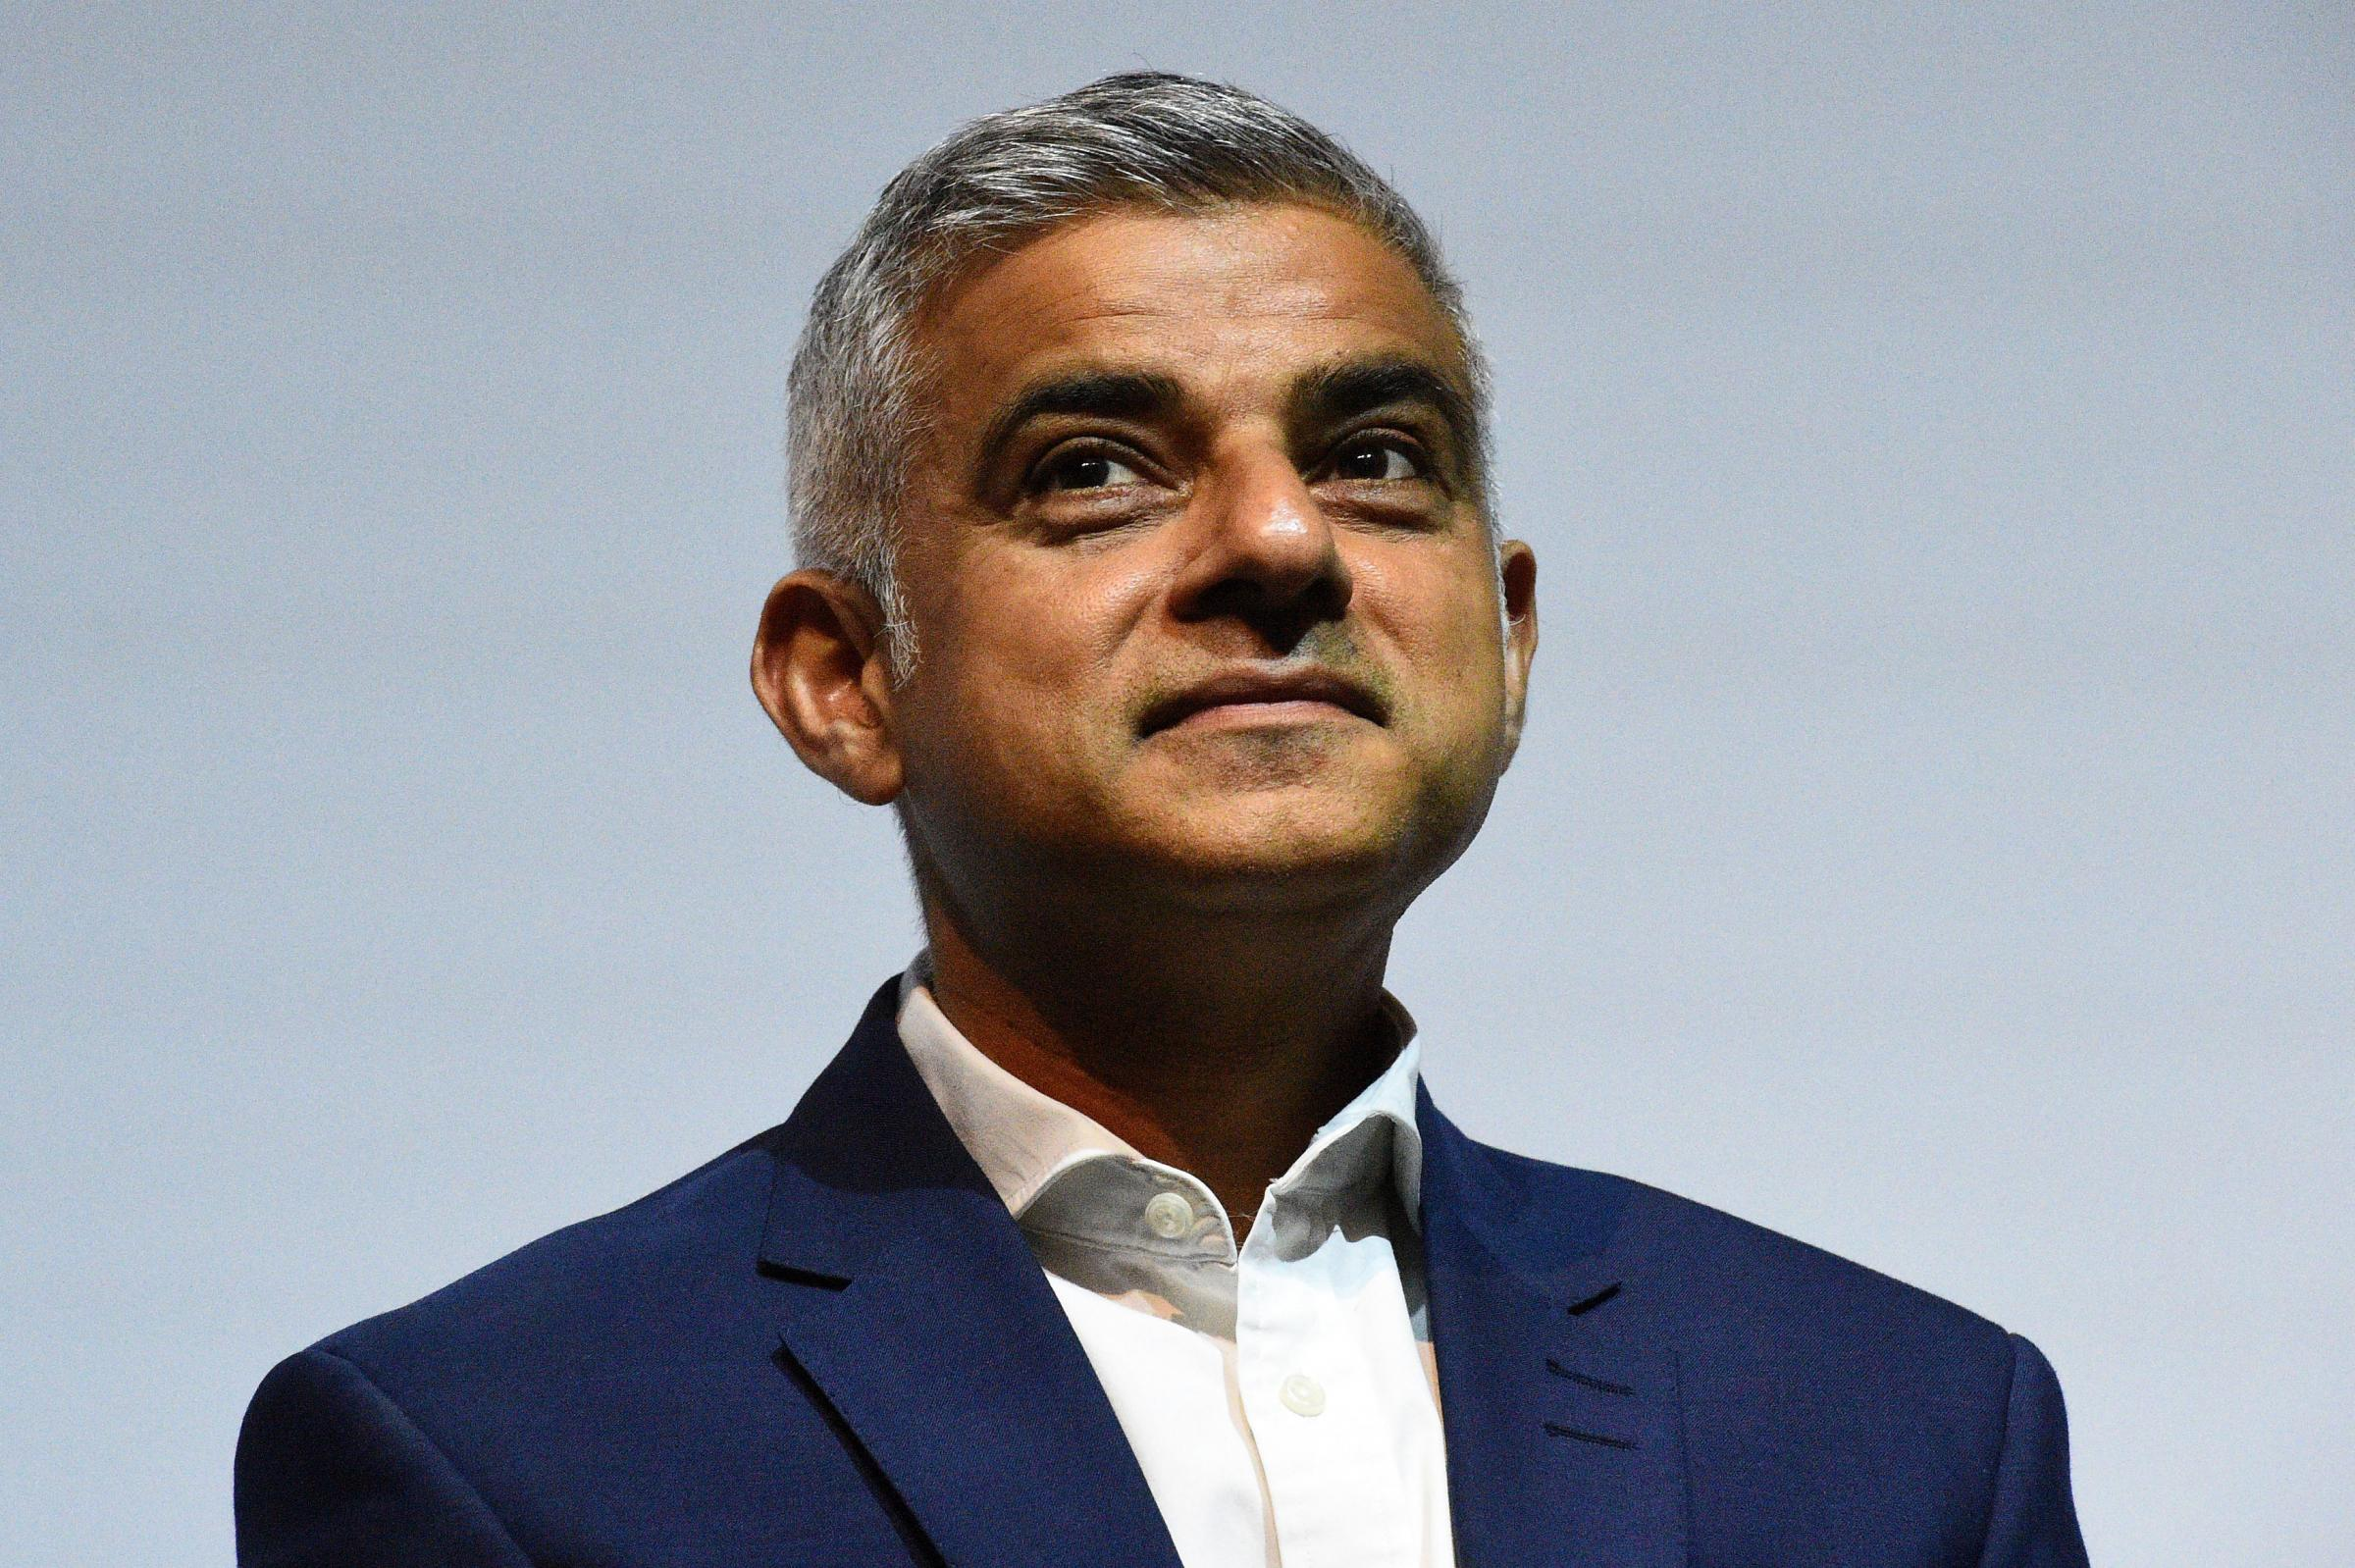 File photo dated 08/05/18 of Mayor of London Sadiq Khan, who has said that he does not believe he has done anything wrong in the battle against violent crime in the capital. PRESS ASSOCIATION Photo. Issue date: Thursday May 10, 2018. Despite criticism of